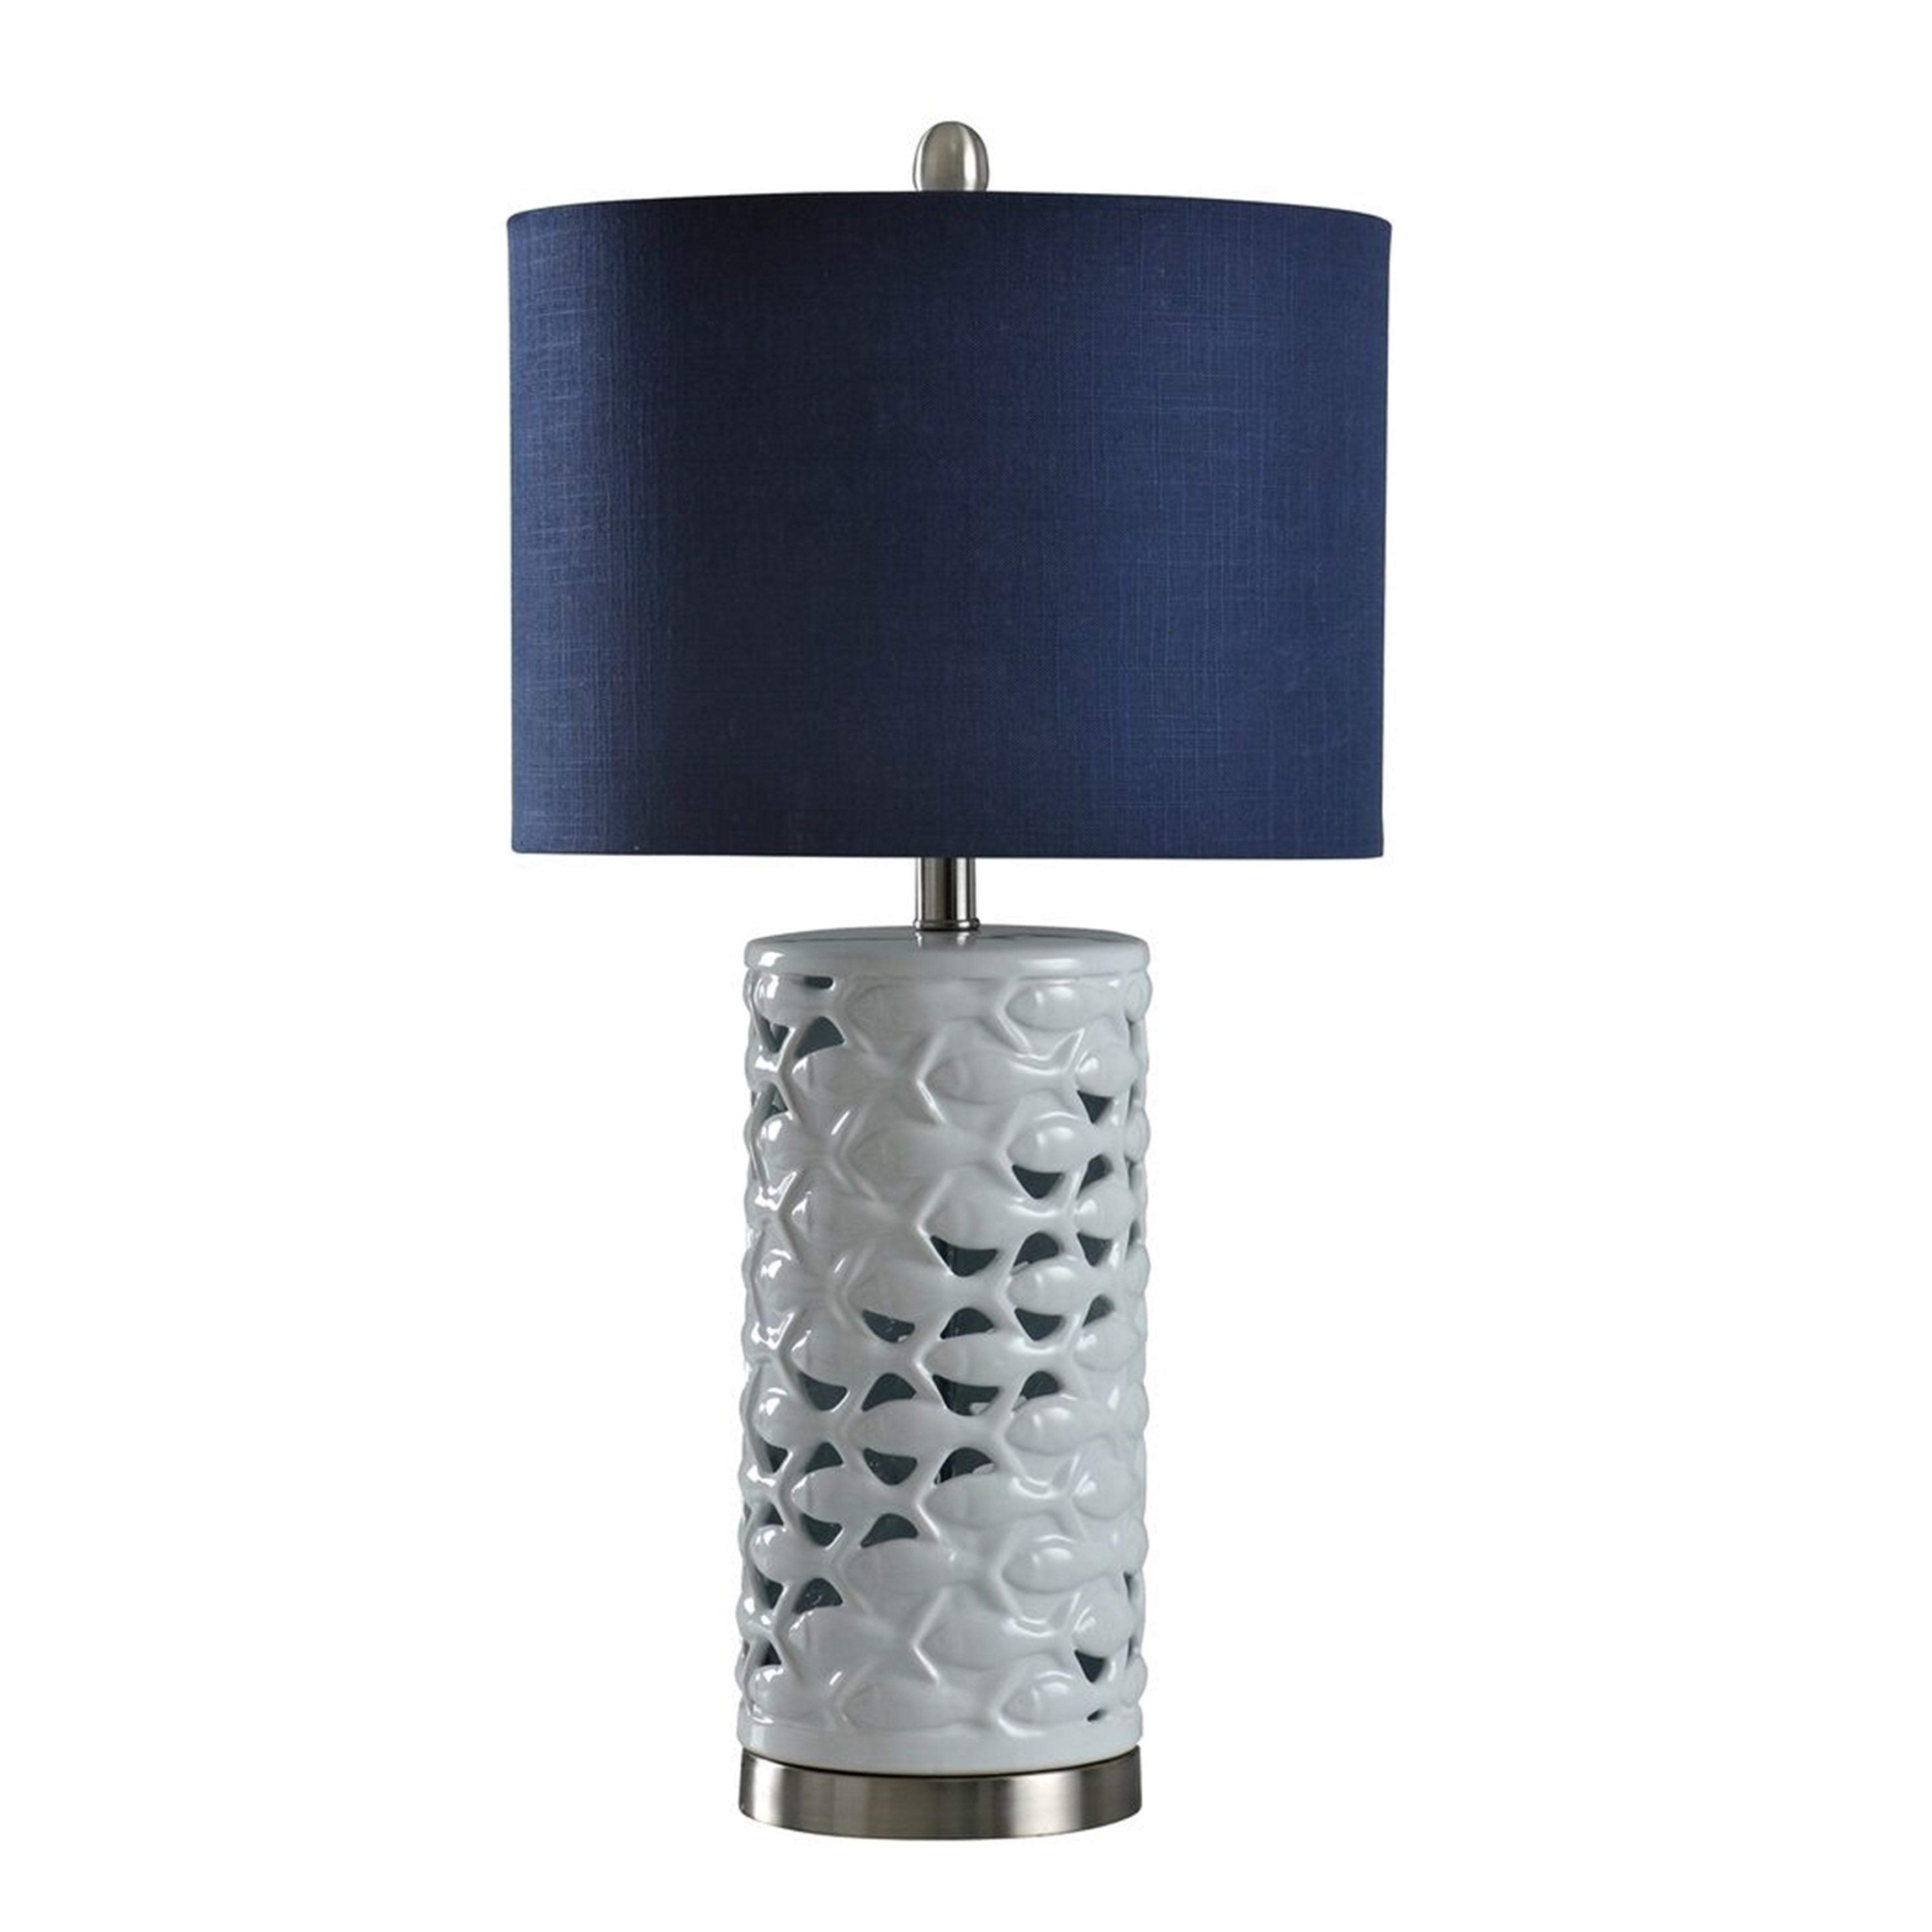 School Of Fish Cylindrical White Table Lamp Navy Blue Shade